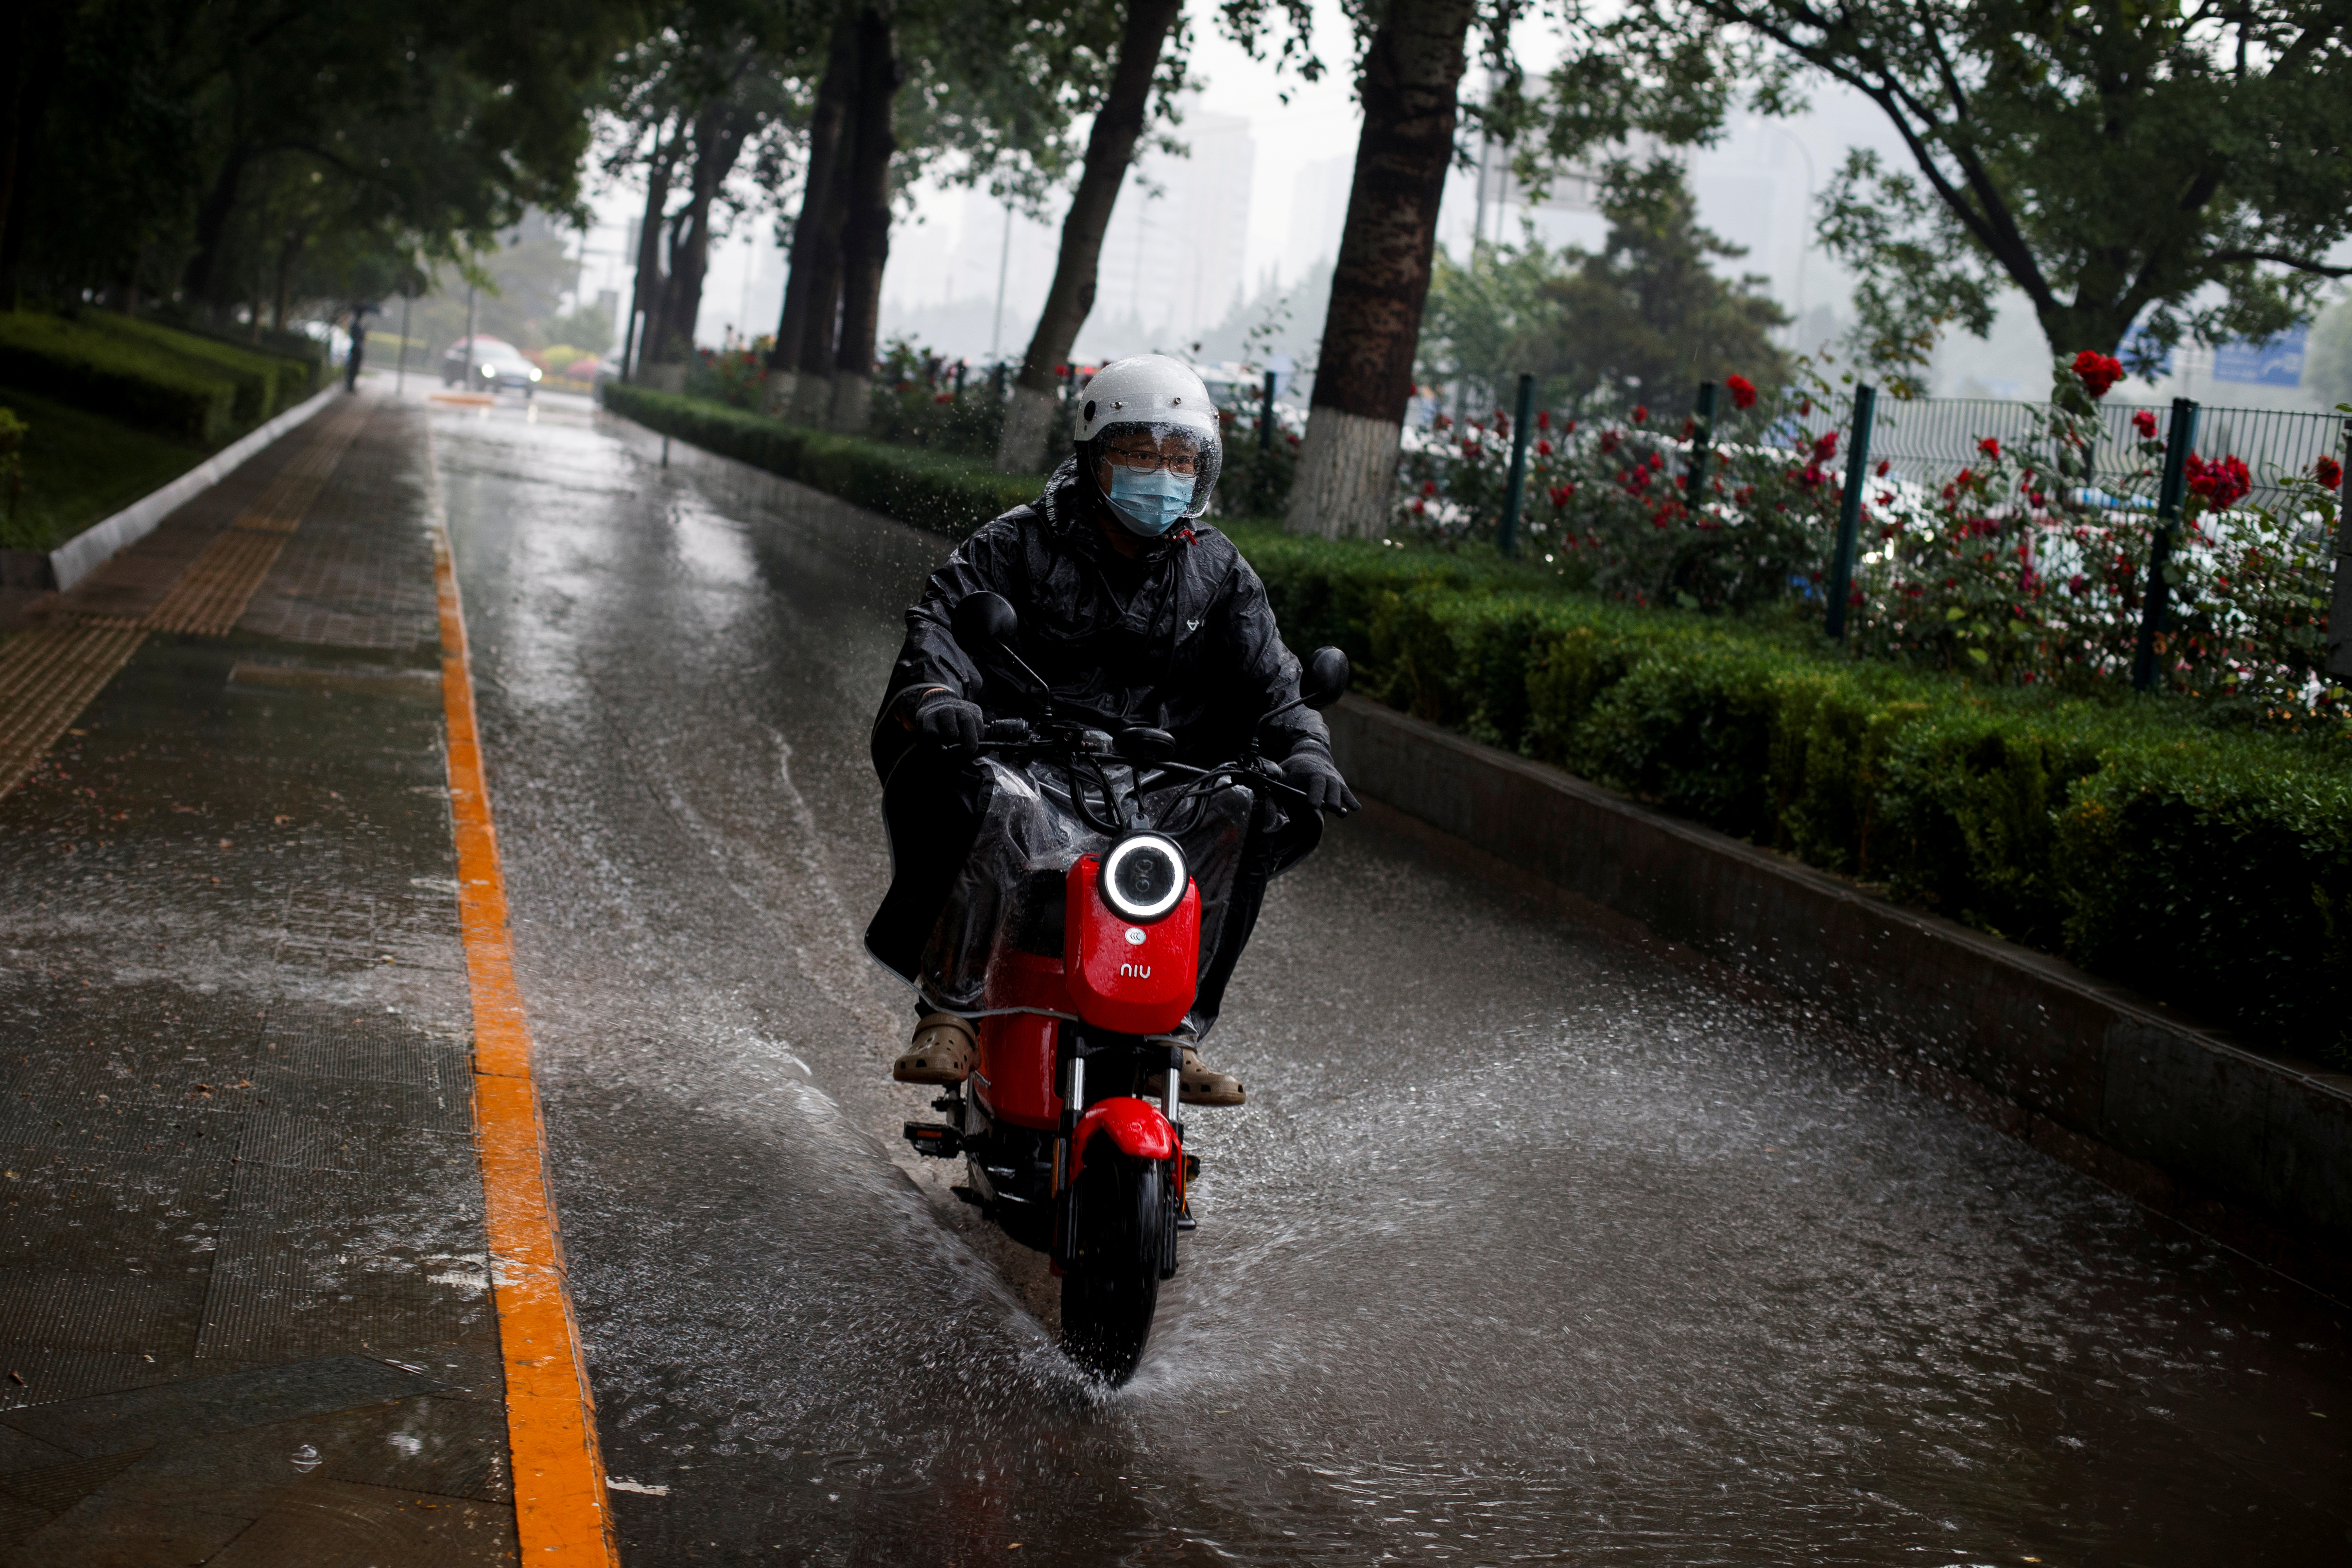 A man rides a Niu electric scooter through a puddle in Beijing, China May 21, 2020. REUTERS/Thomas Peter/File Photo